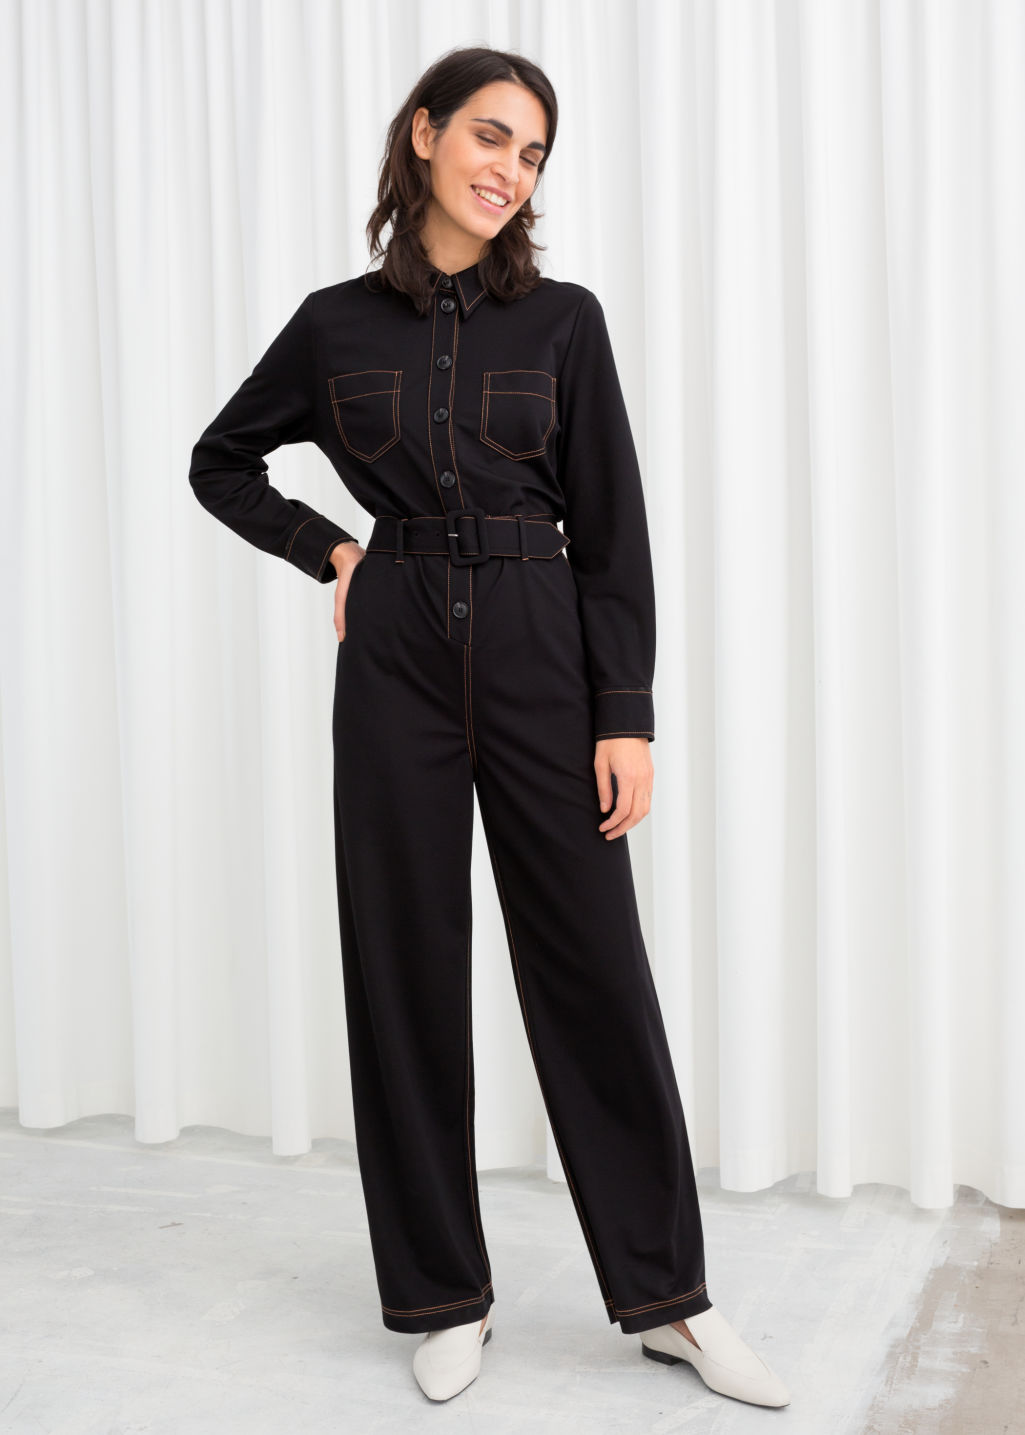 ff48ae78b8d Workwear Boiler Suit - Black - Jumpsuits   Playsuits -   Other Stories